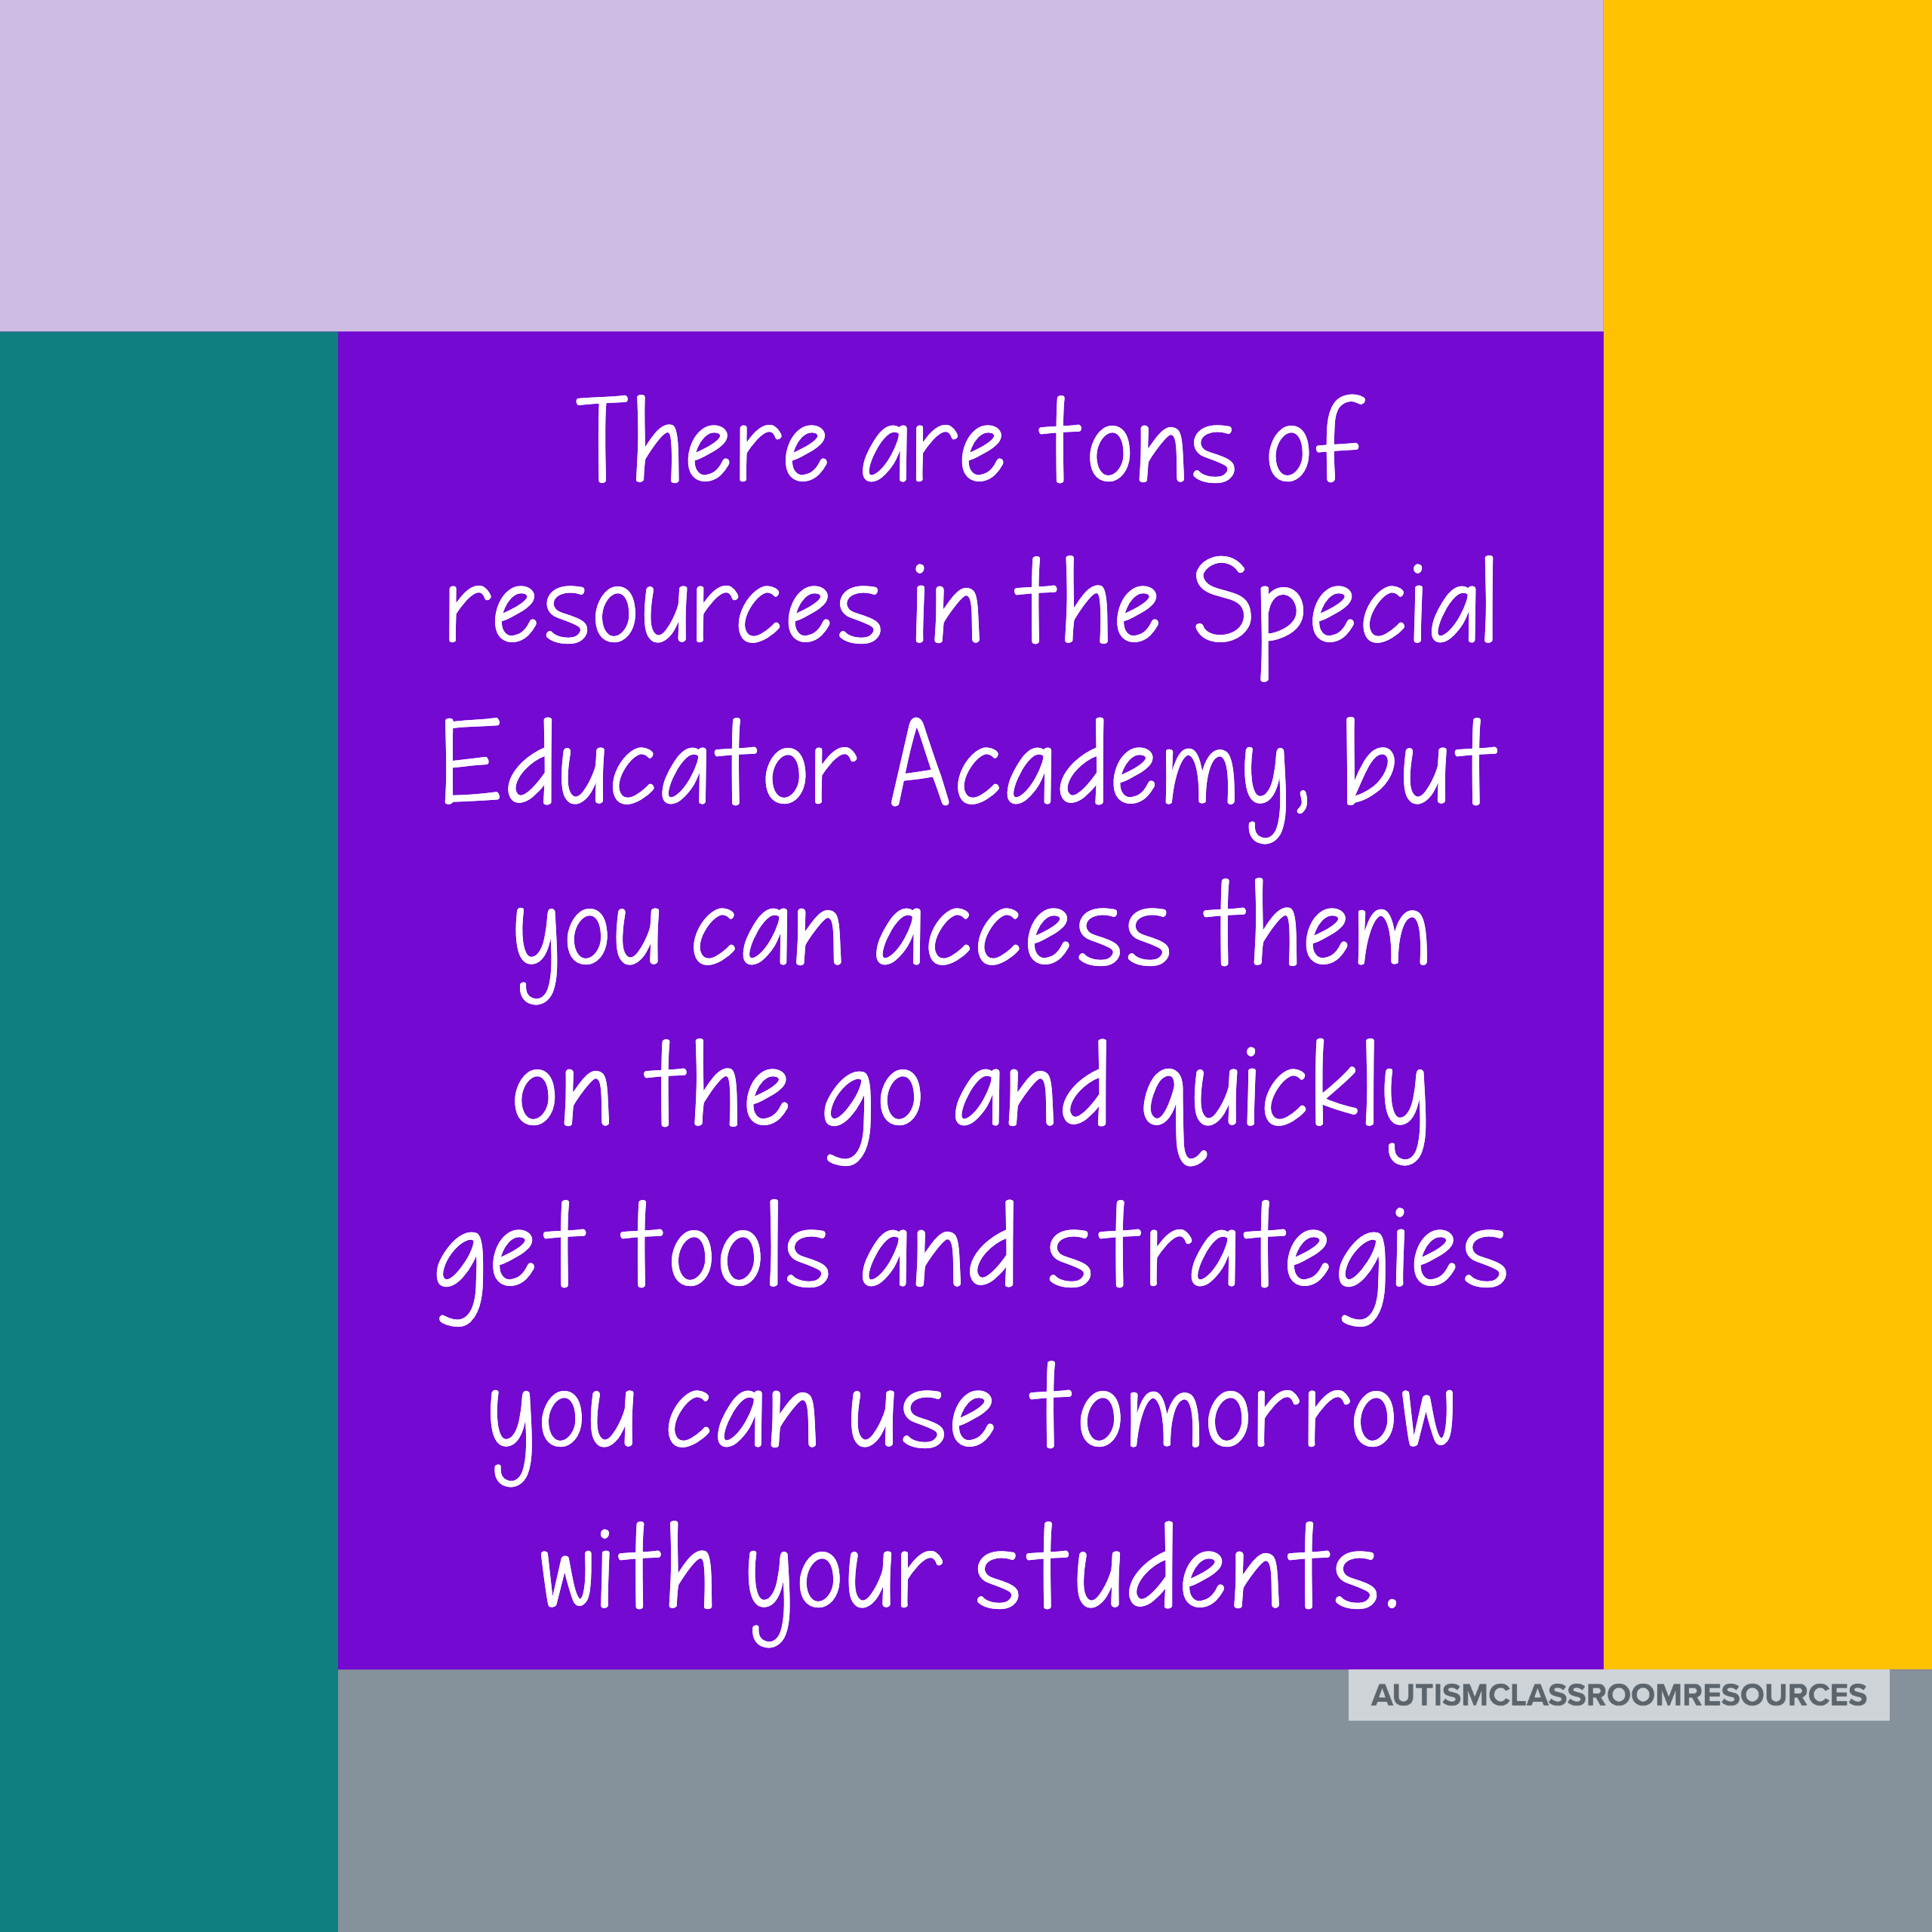 There are tons of resources in the Special Educator Academy, but you an access them on the go. Quickly get tools and strategies you can use tomorrow with your students. #specialeducation #specialeducatoracademy